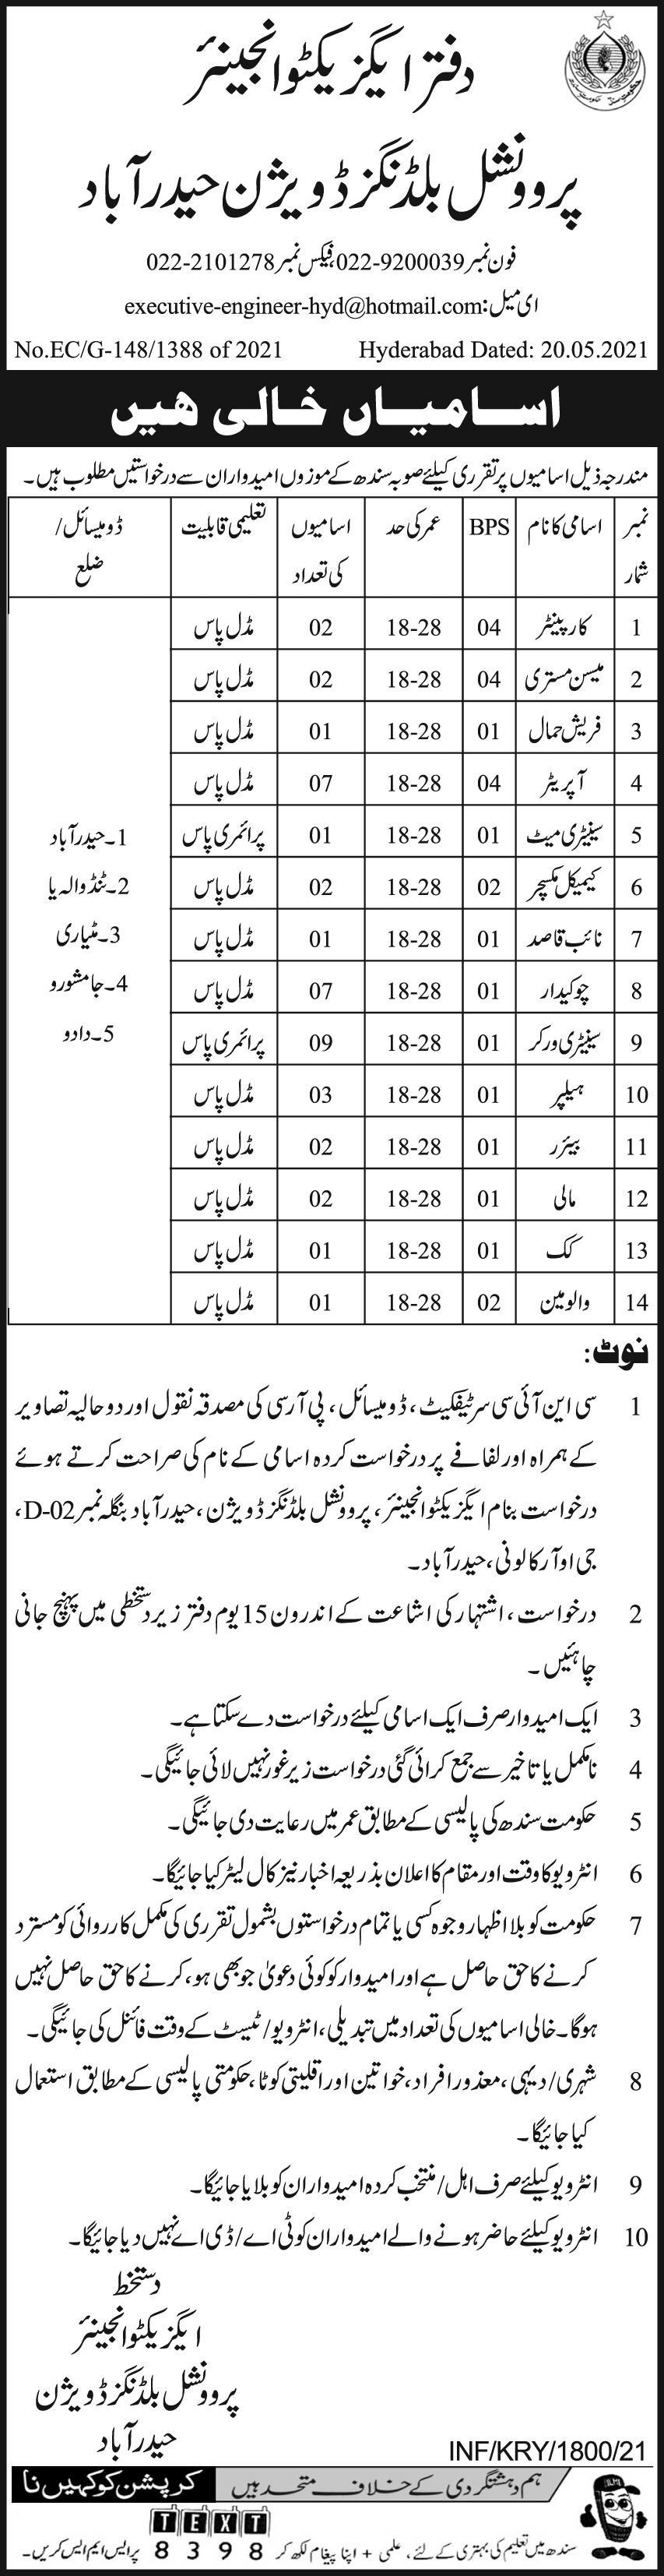 Provincial Buildings Division Jobs 2021 For Miscellaneous Staff as Carpenter, Masson Mistry, Machine Operator, Sanitary Mate, Chemical Mixture, Naib Qasid, Chowkidar, Sanitary Worker, Helper, Bearer, Malhi, Cook and Volveman